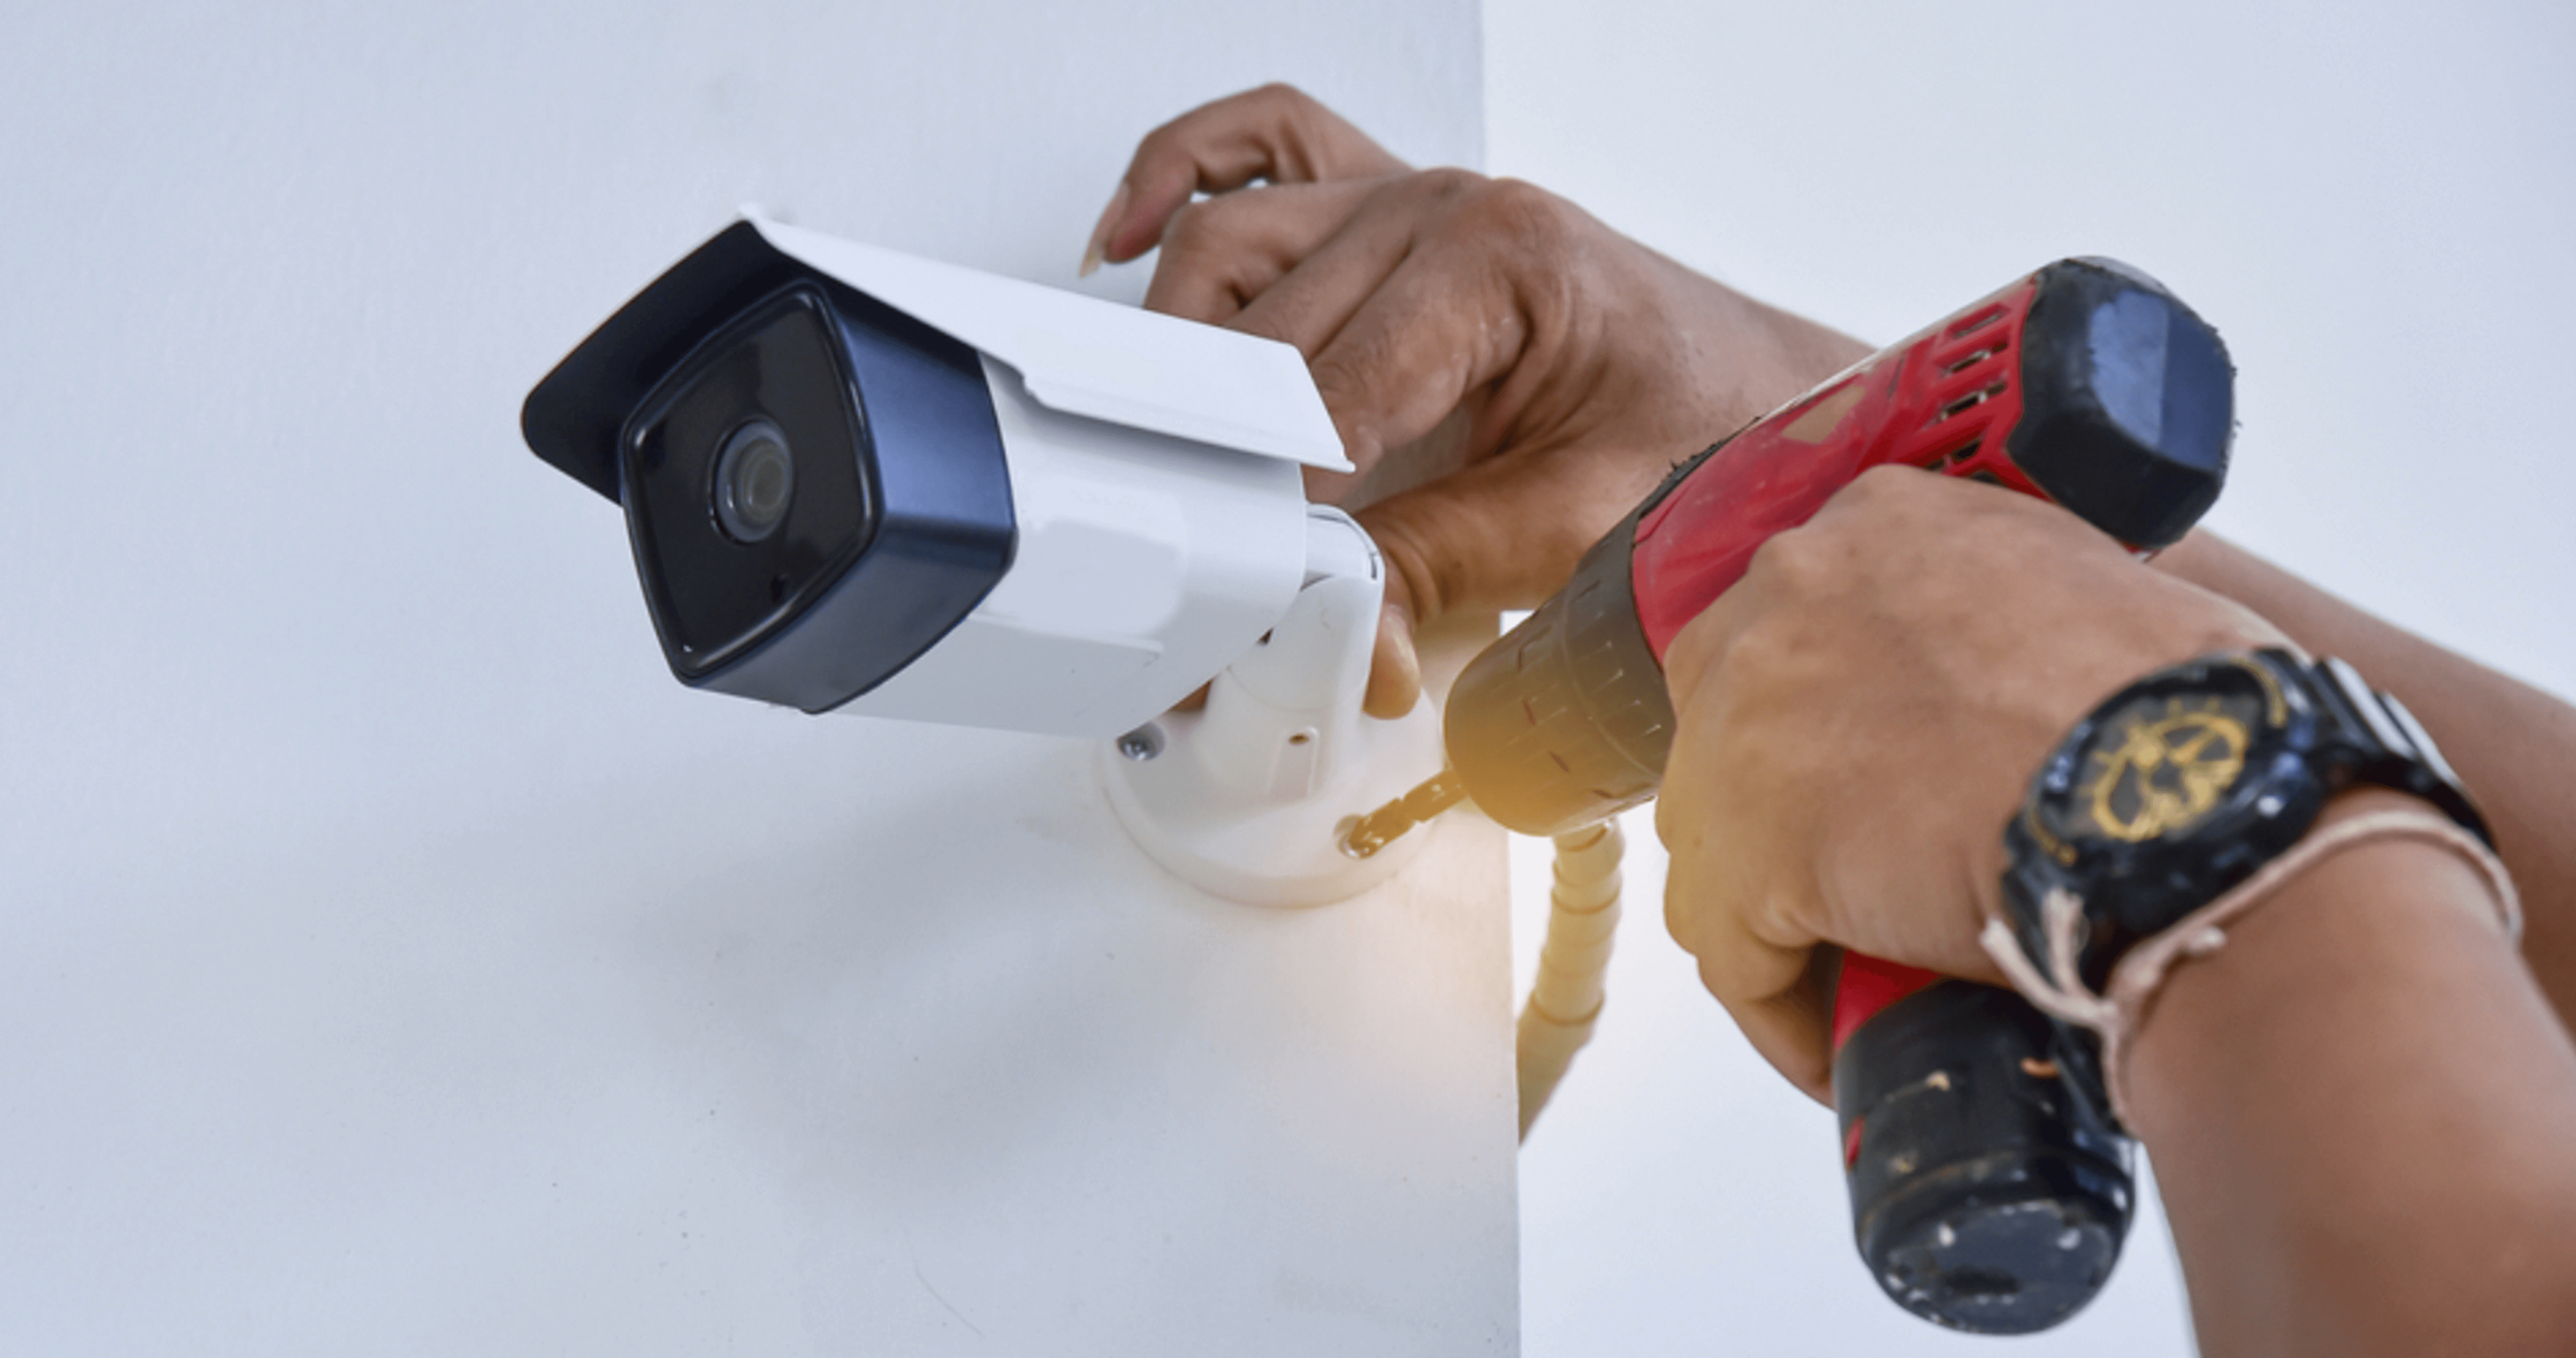 Security Camera Installation Services auckland